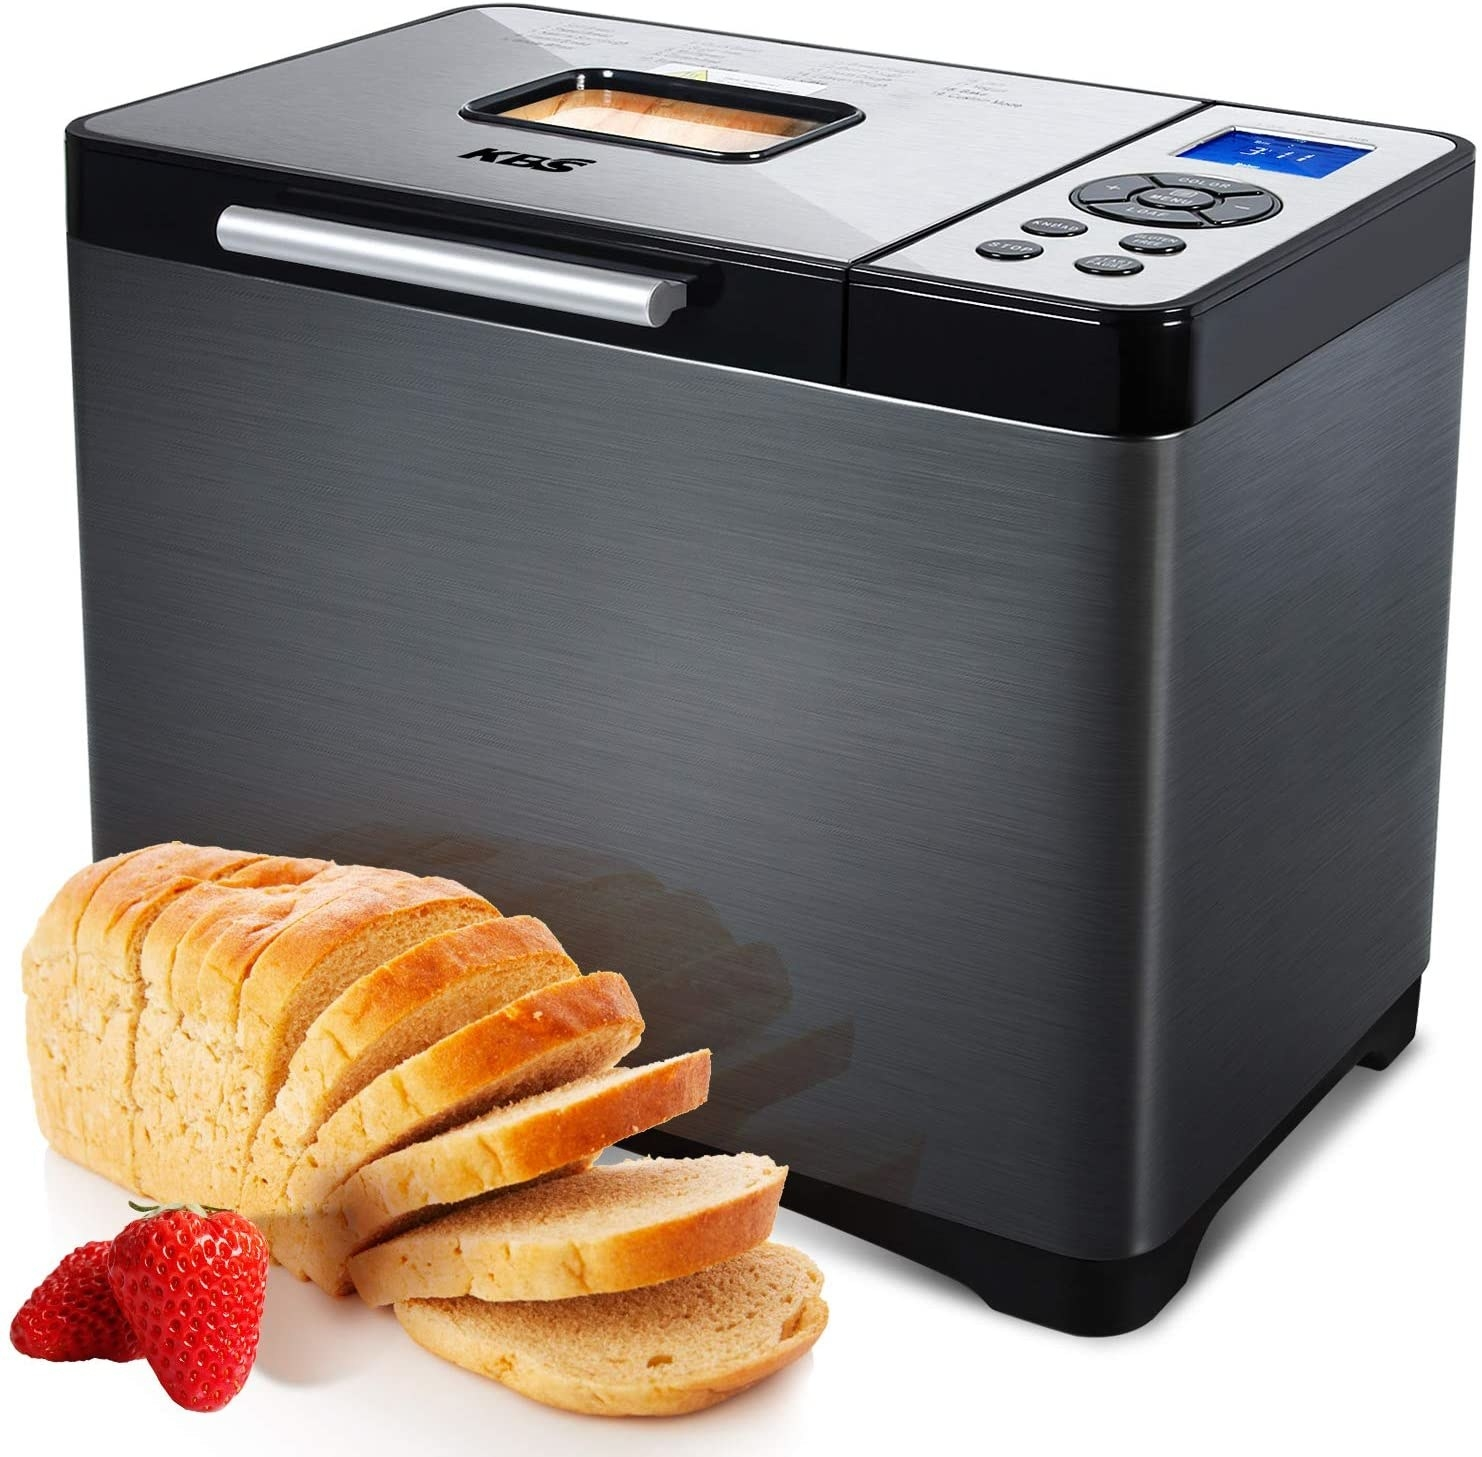 the breadmaker and a loaf of bread